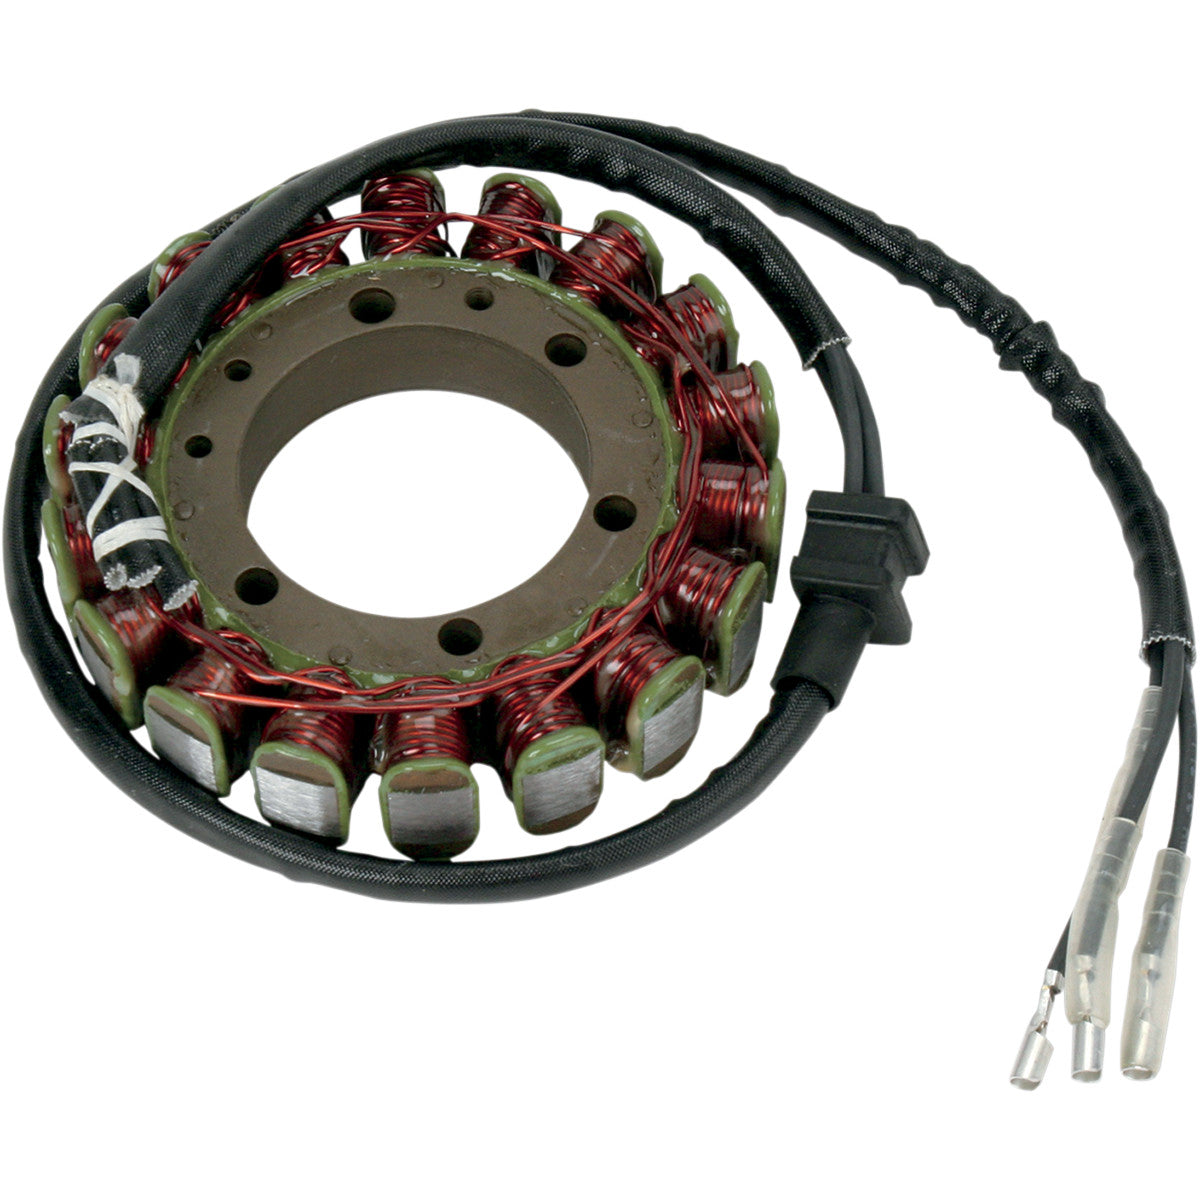 21-204 RICK'S MOTORSPORT ELECTRIC Alternator Stator STATOR, KAWASAKI